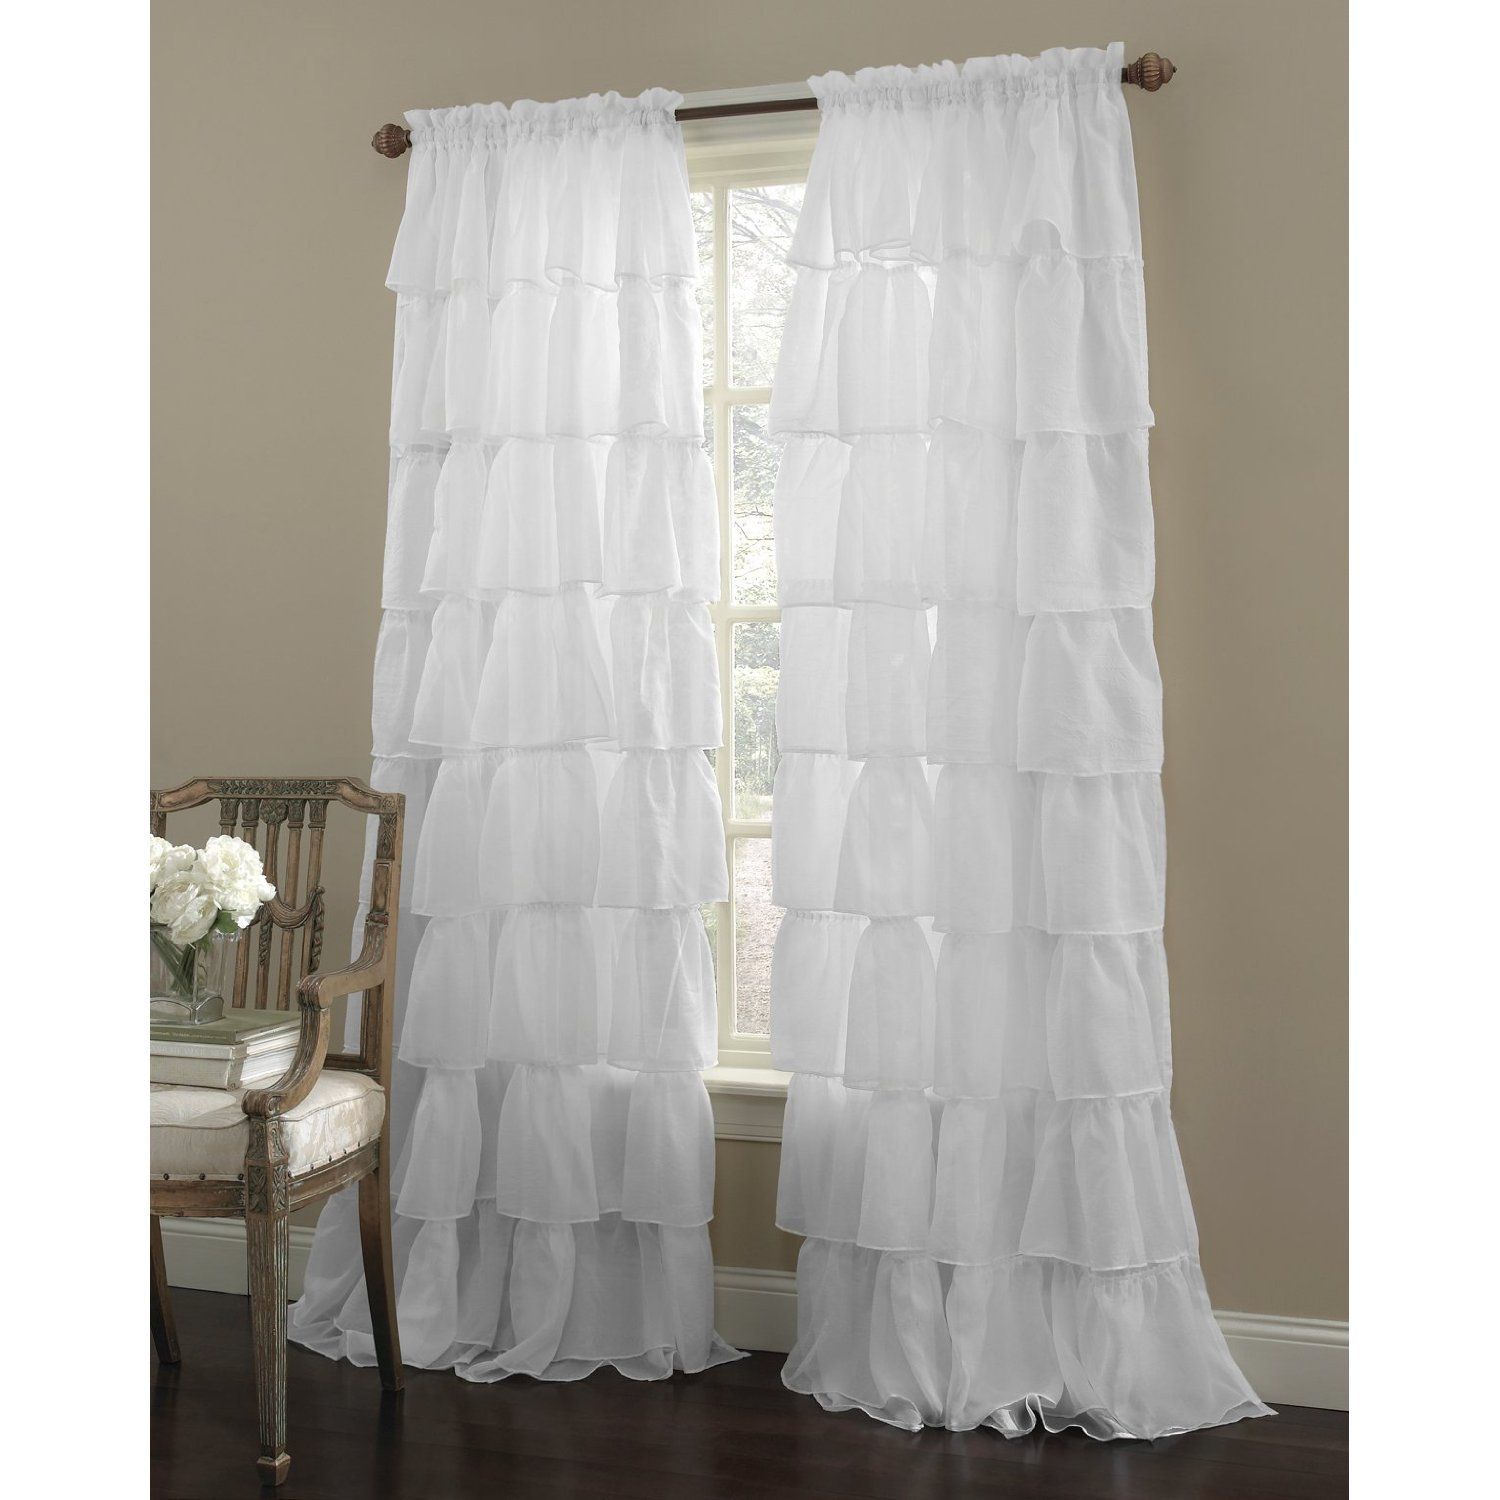 white ruffled curtain panel farmhouse decor